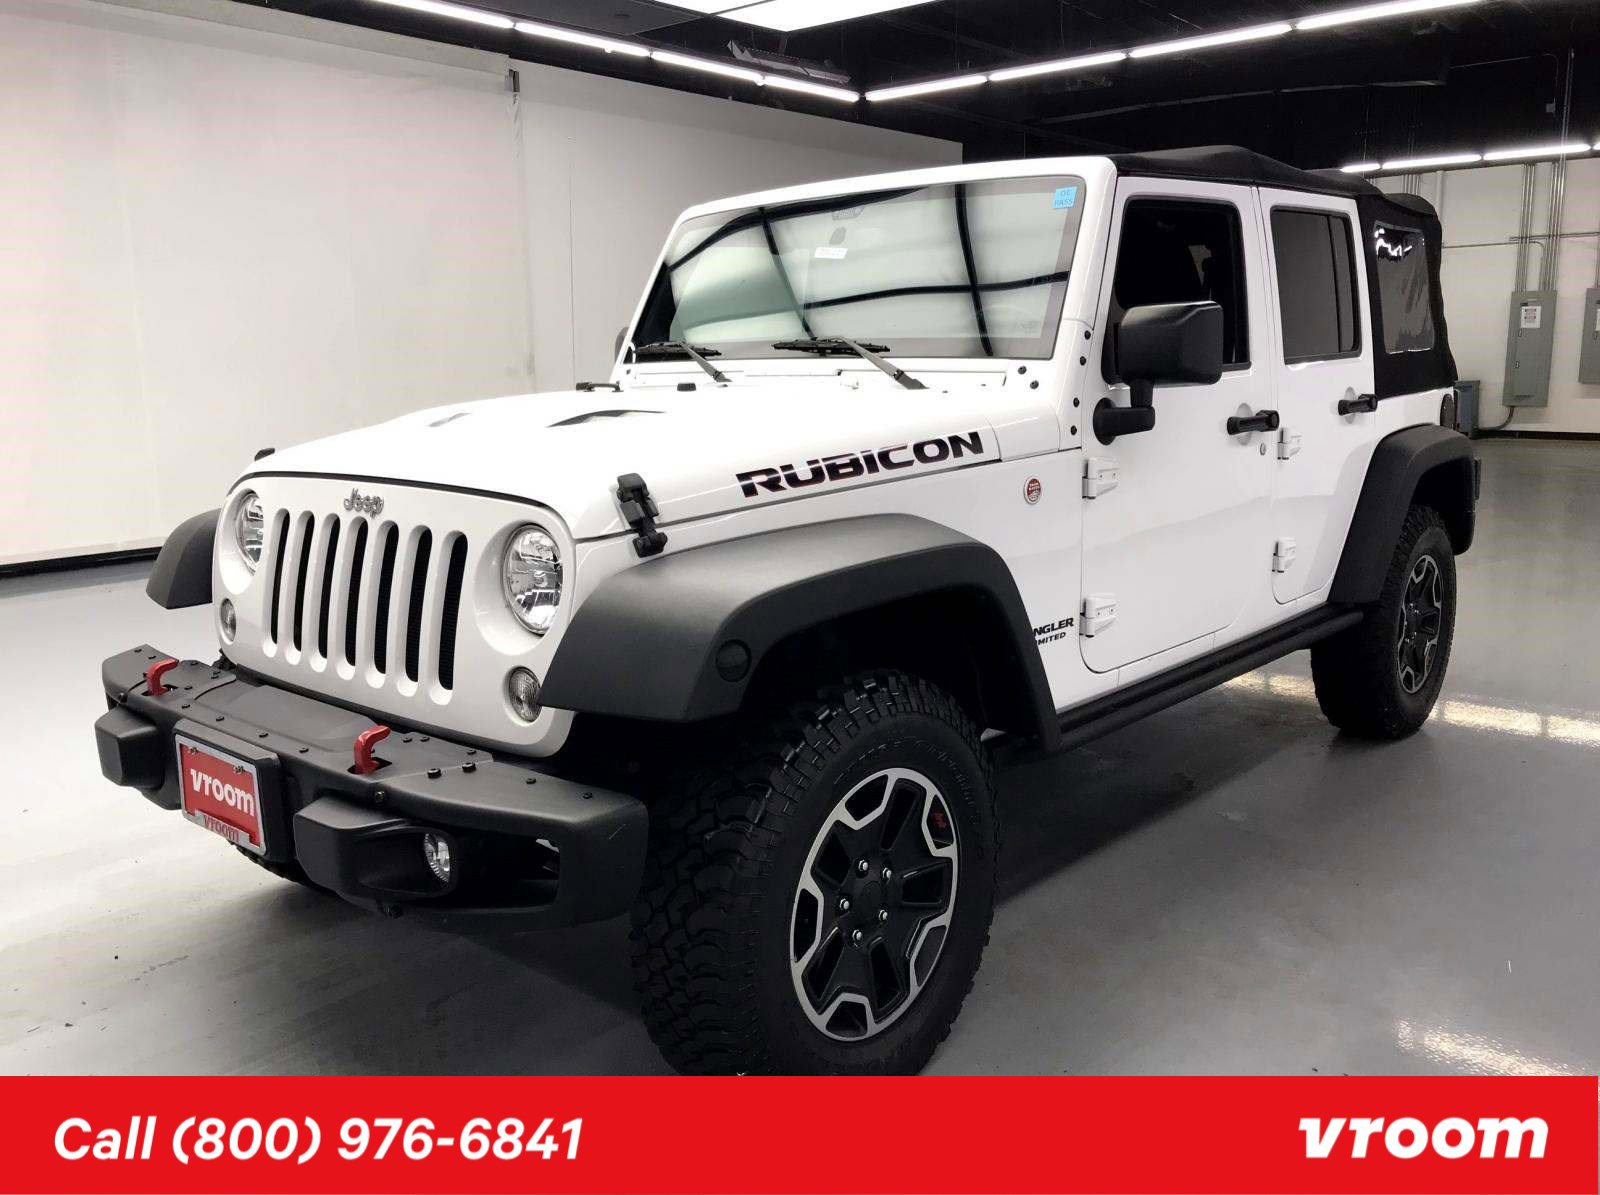 2016 Jeep Wrangler 4WD Unlimited Rubicon image